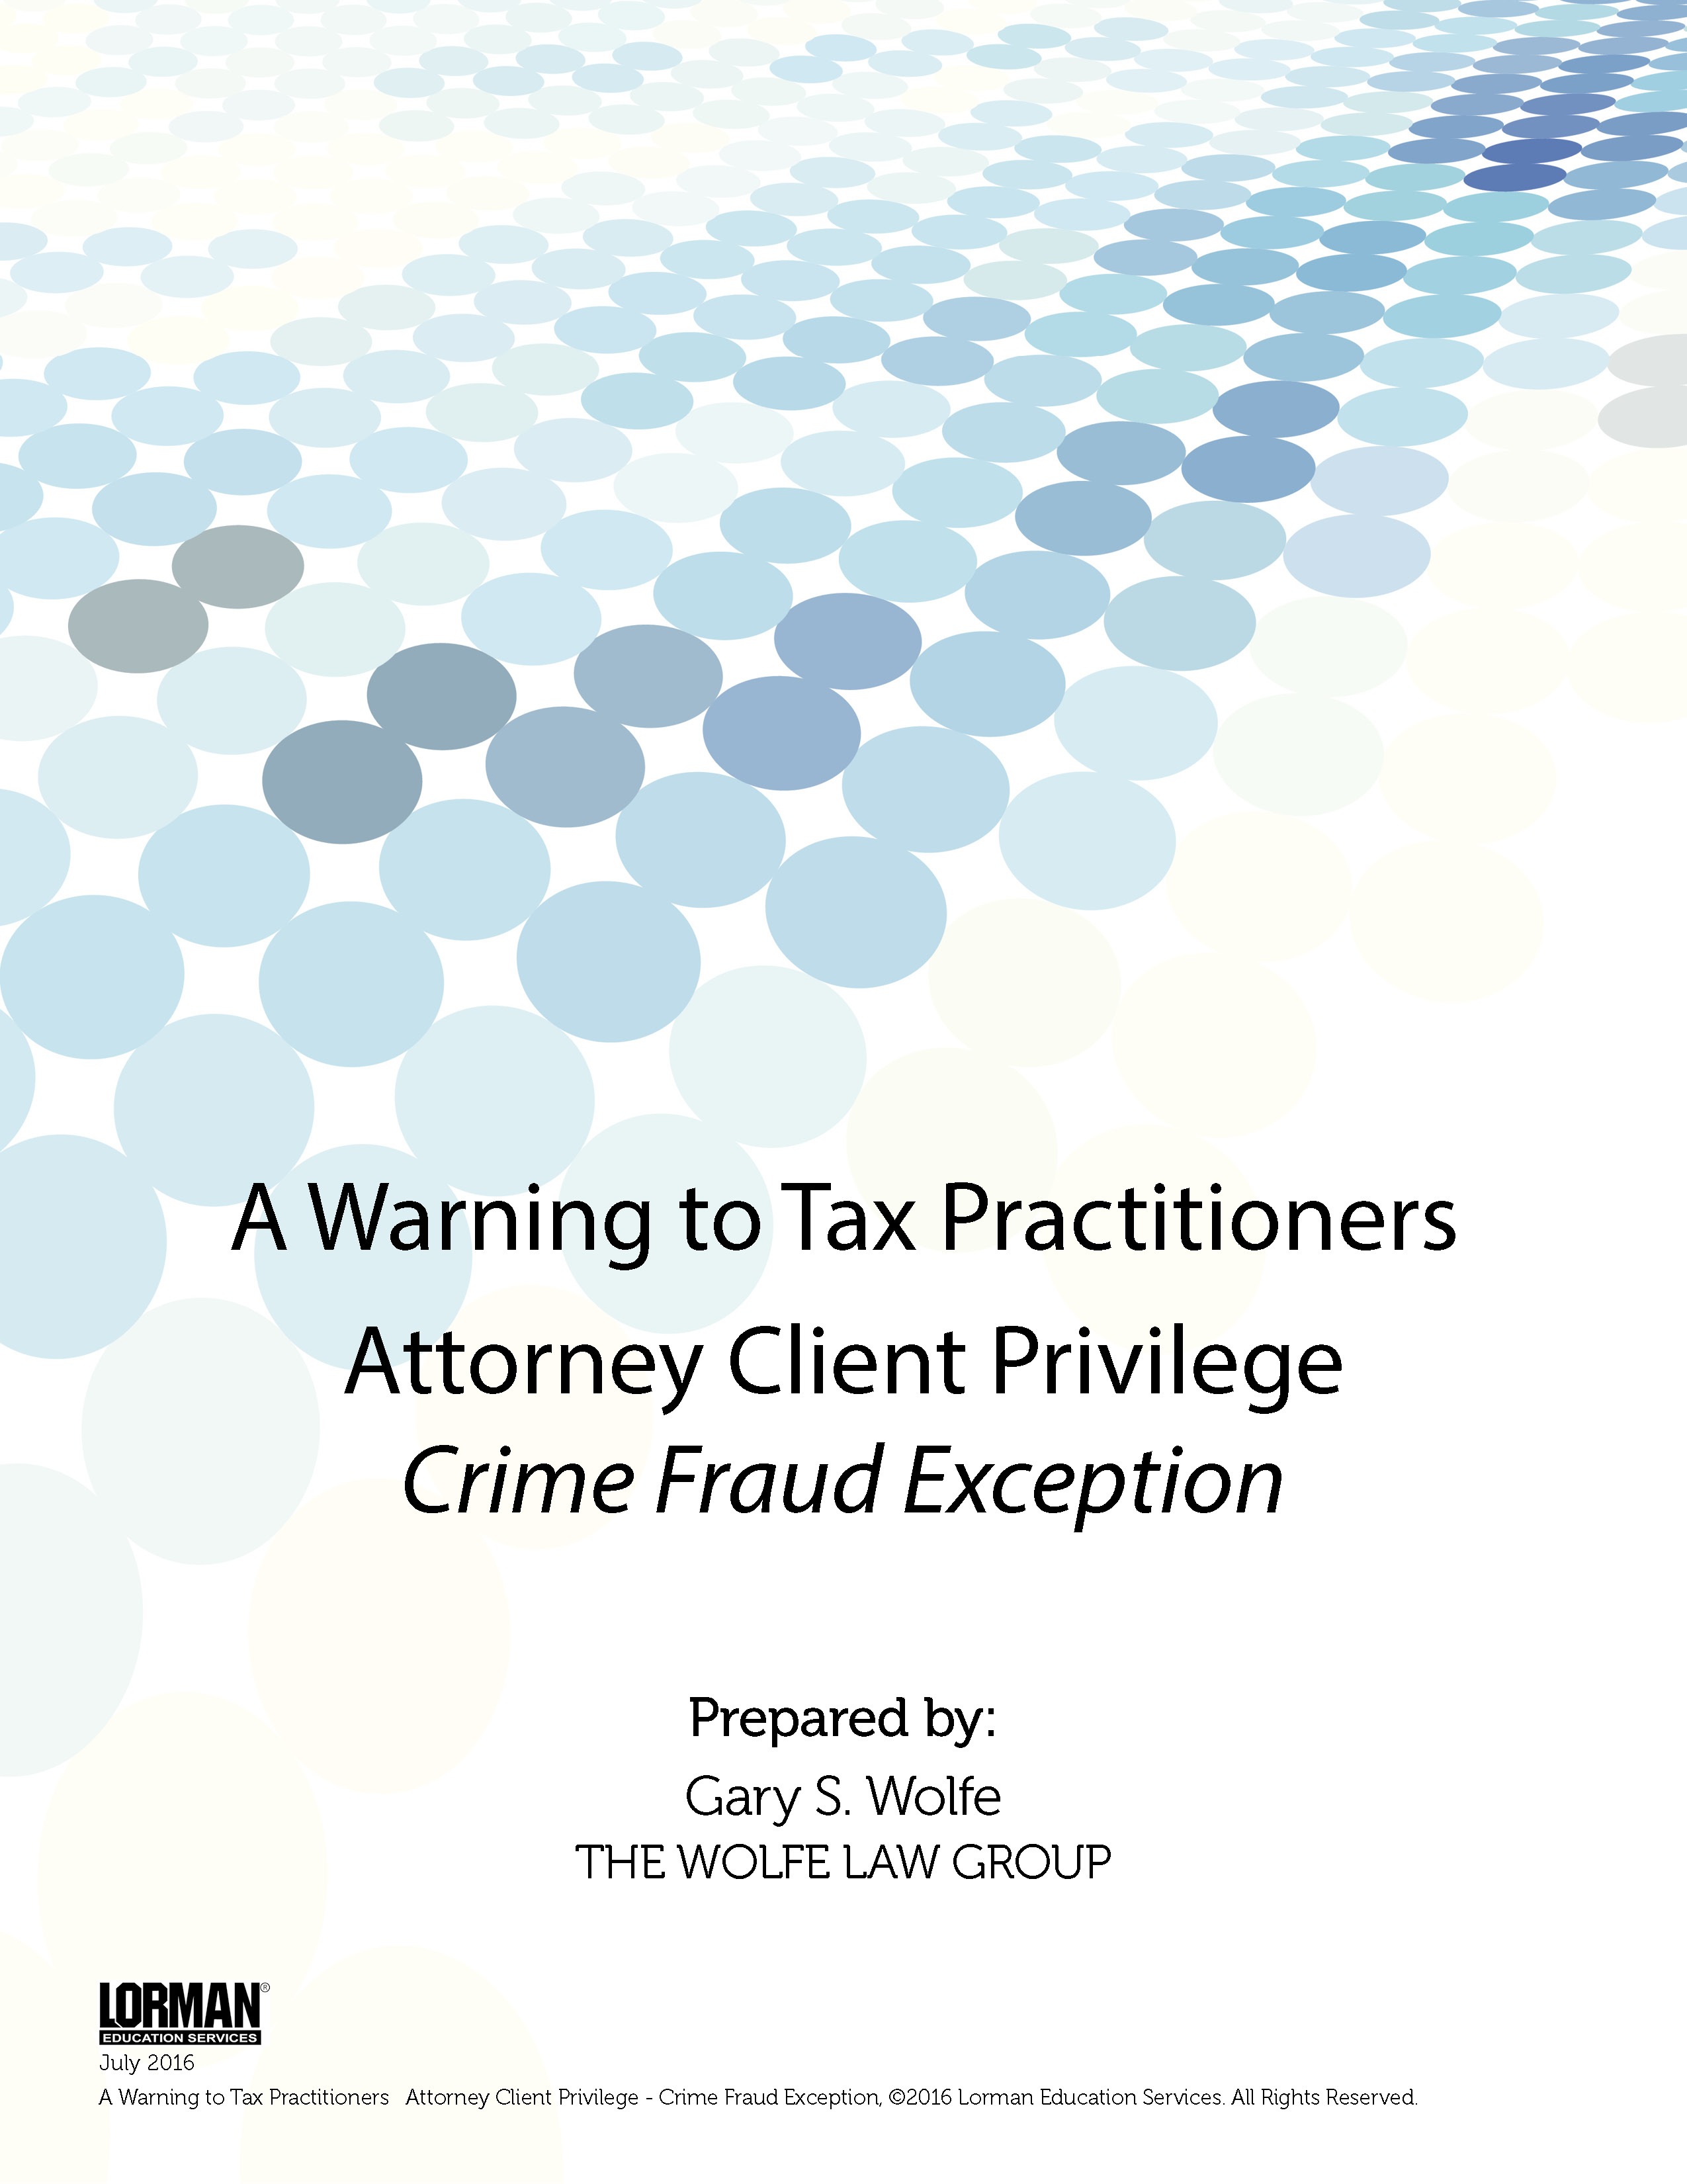 A Warning to Tax Practitioners and Attorney Client Privilege Crime Fraud Exception